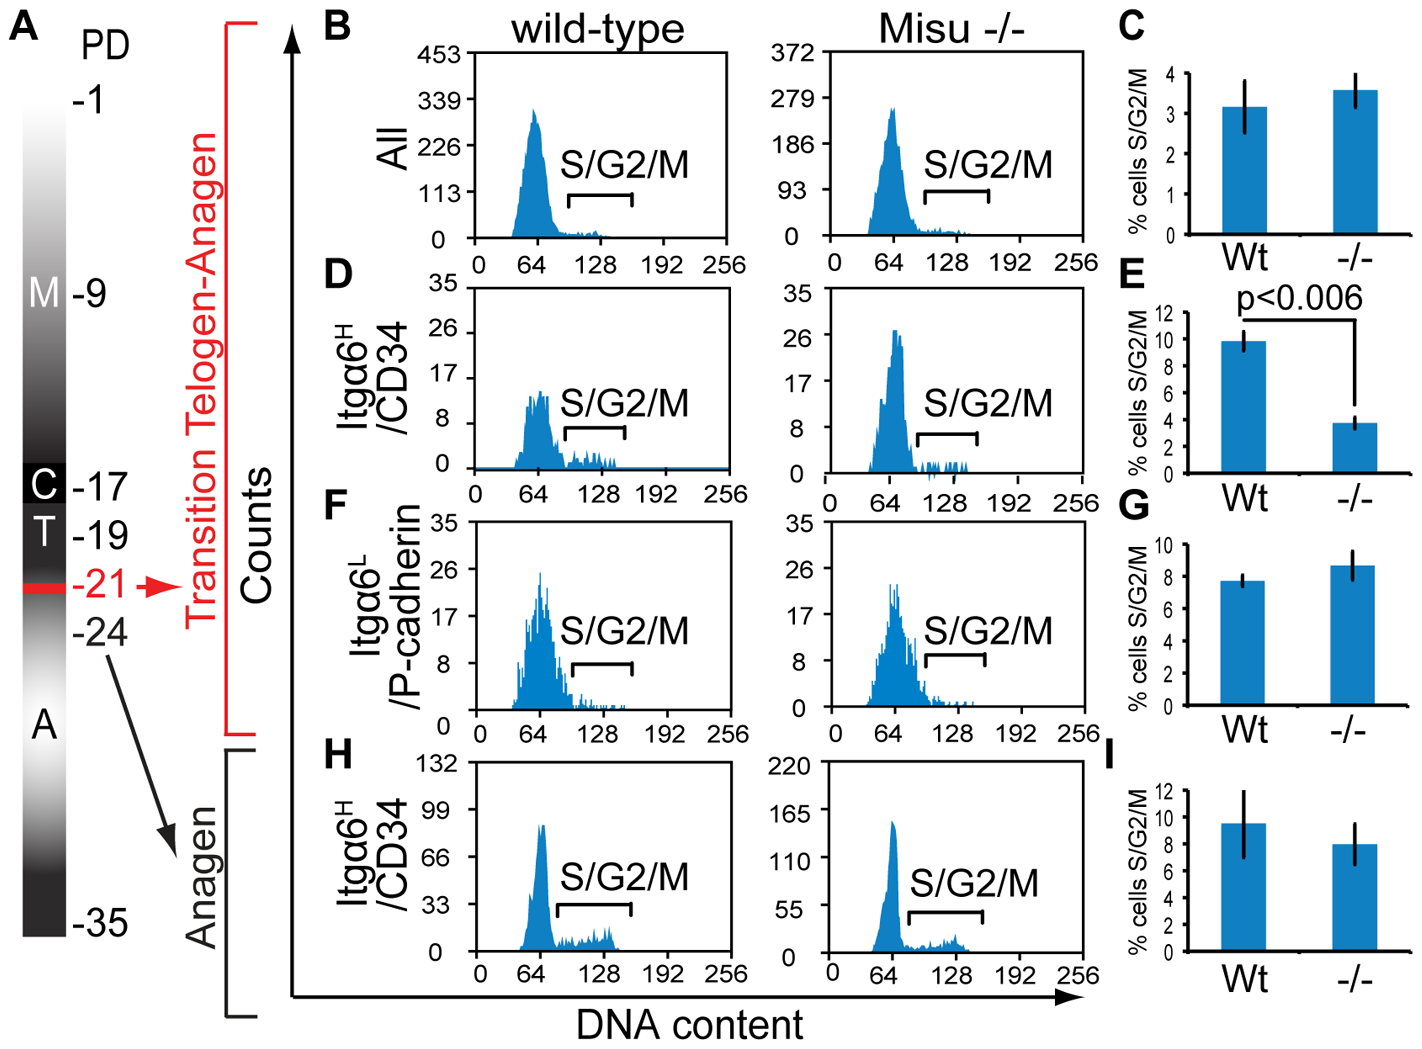 Misu delays cell cycle entry of bulge stem cells at the onset of anagen.